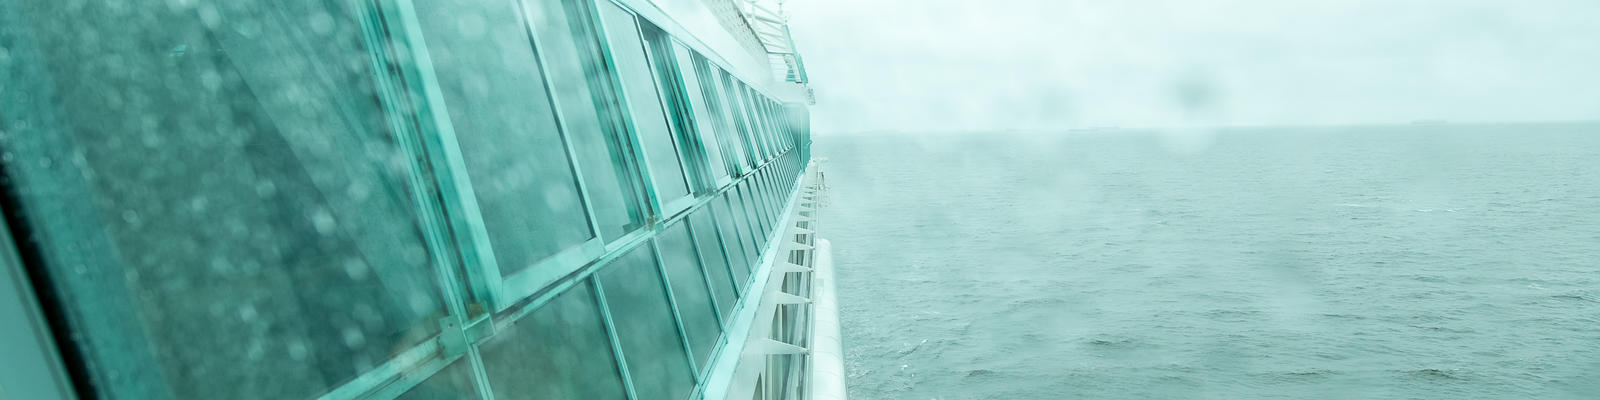 12 Surefire Ways to Have a Miserable Cruise (Photo: Marcel Kriegl/Shutterstock)